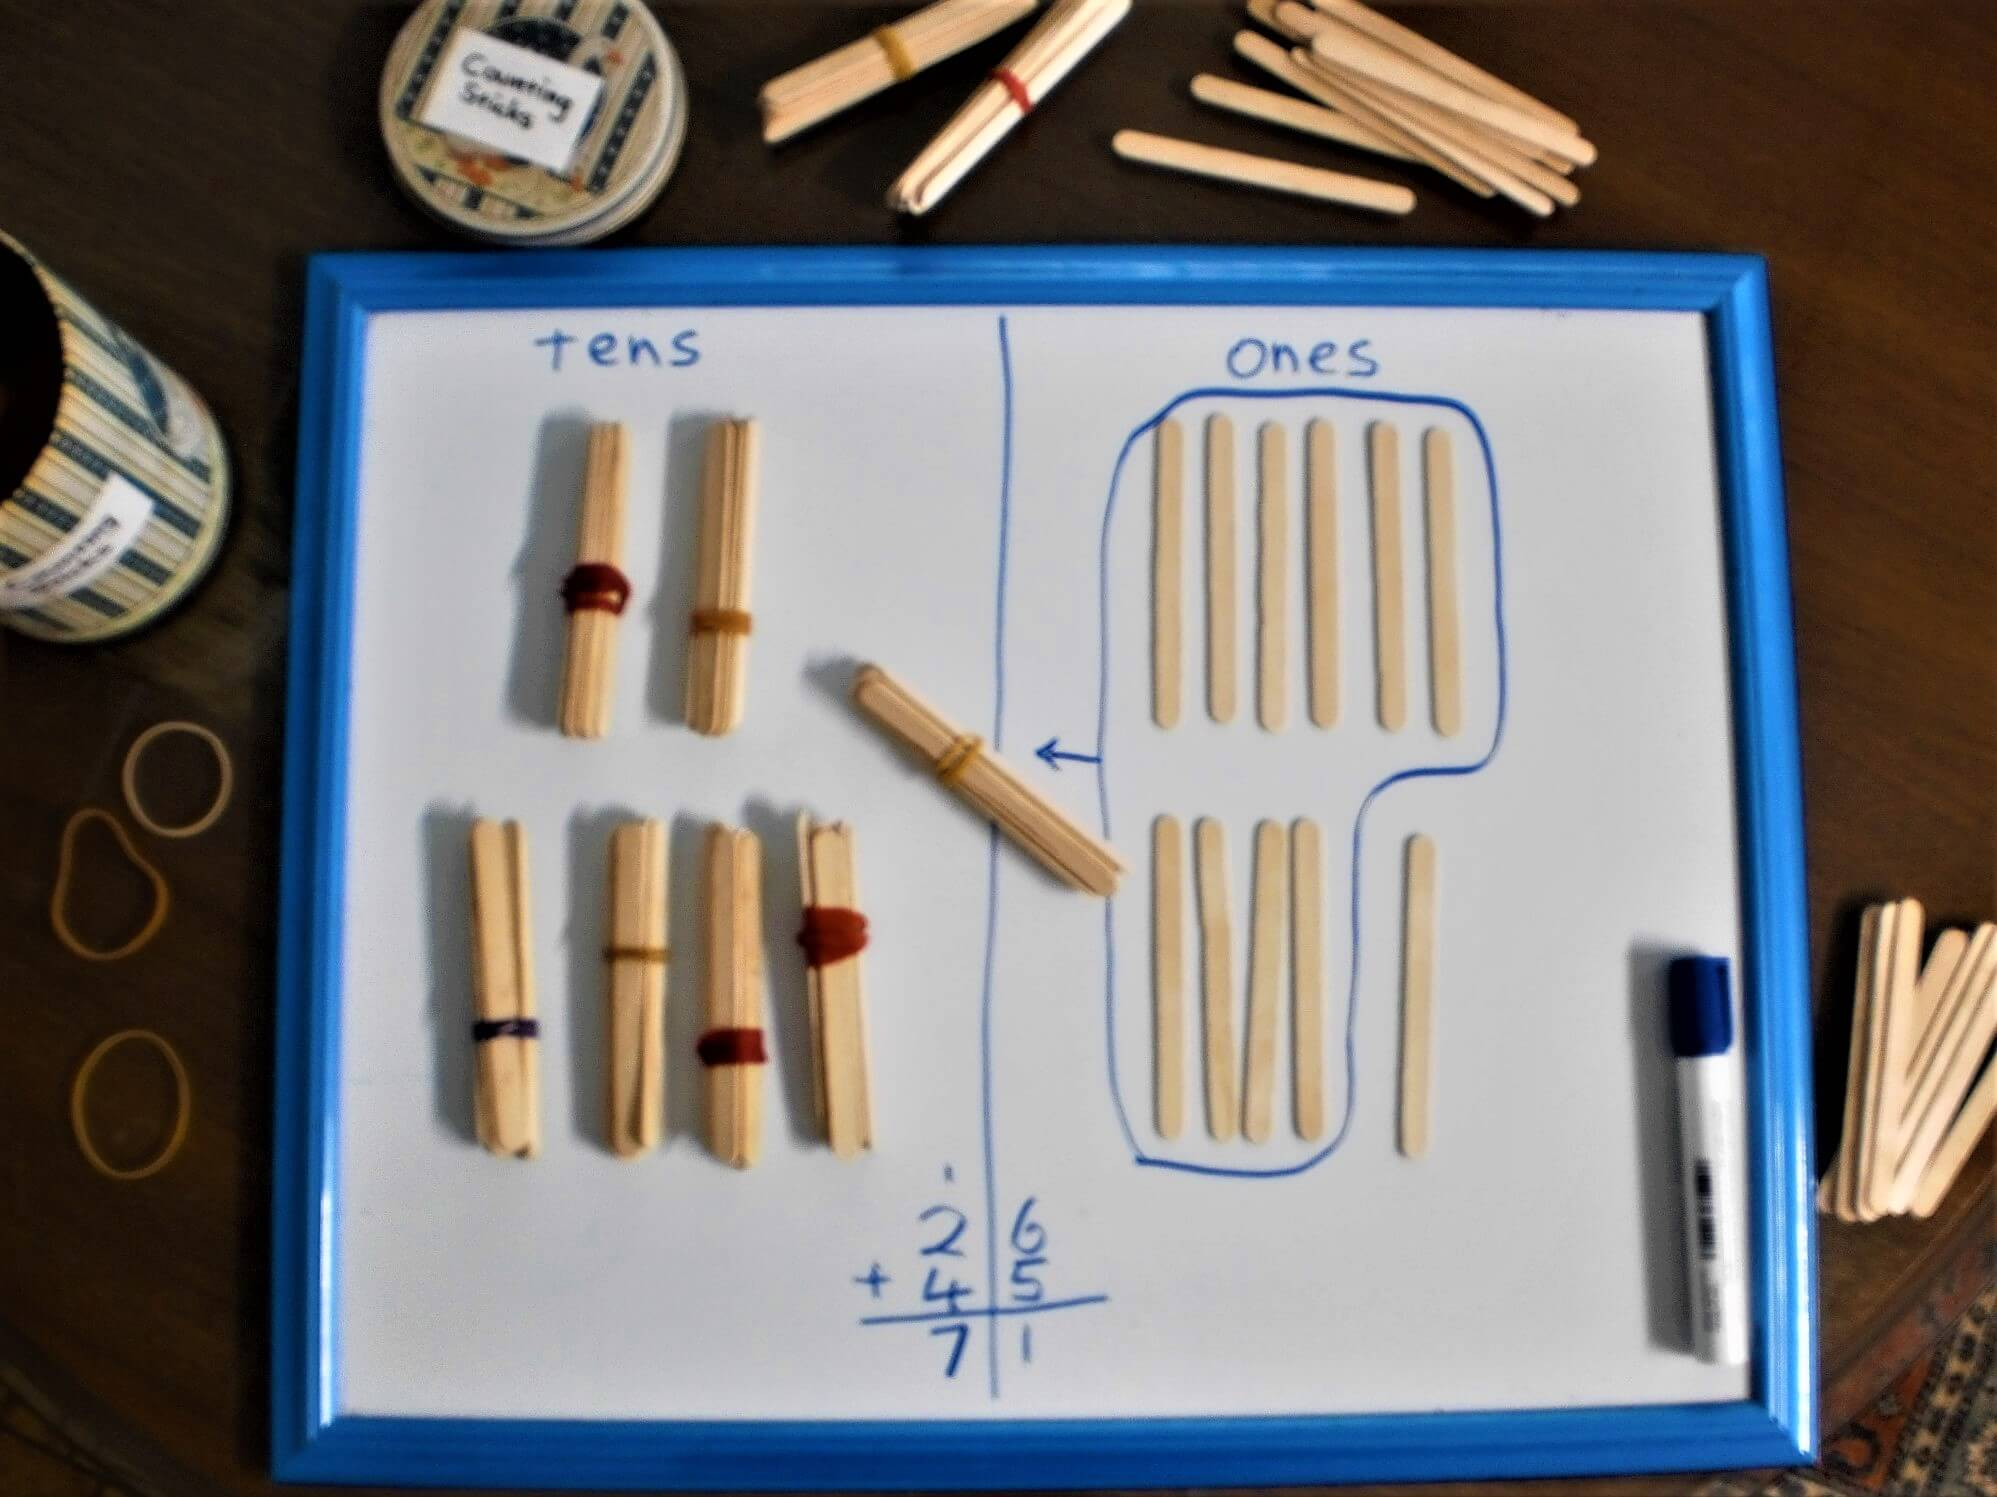 Bundled and single icy-pole sticks used to illustrate addition on a place value chart.